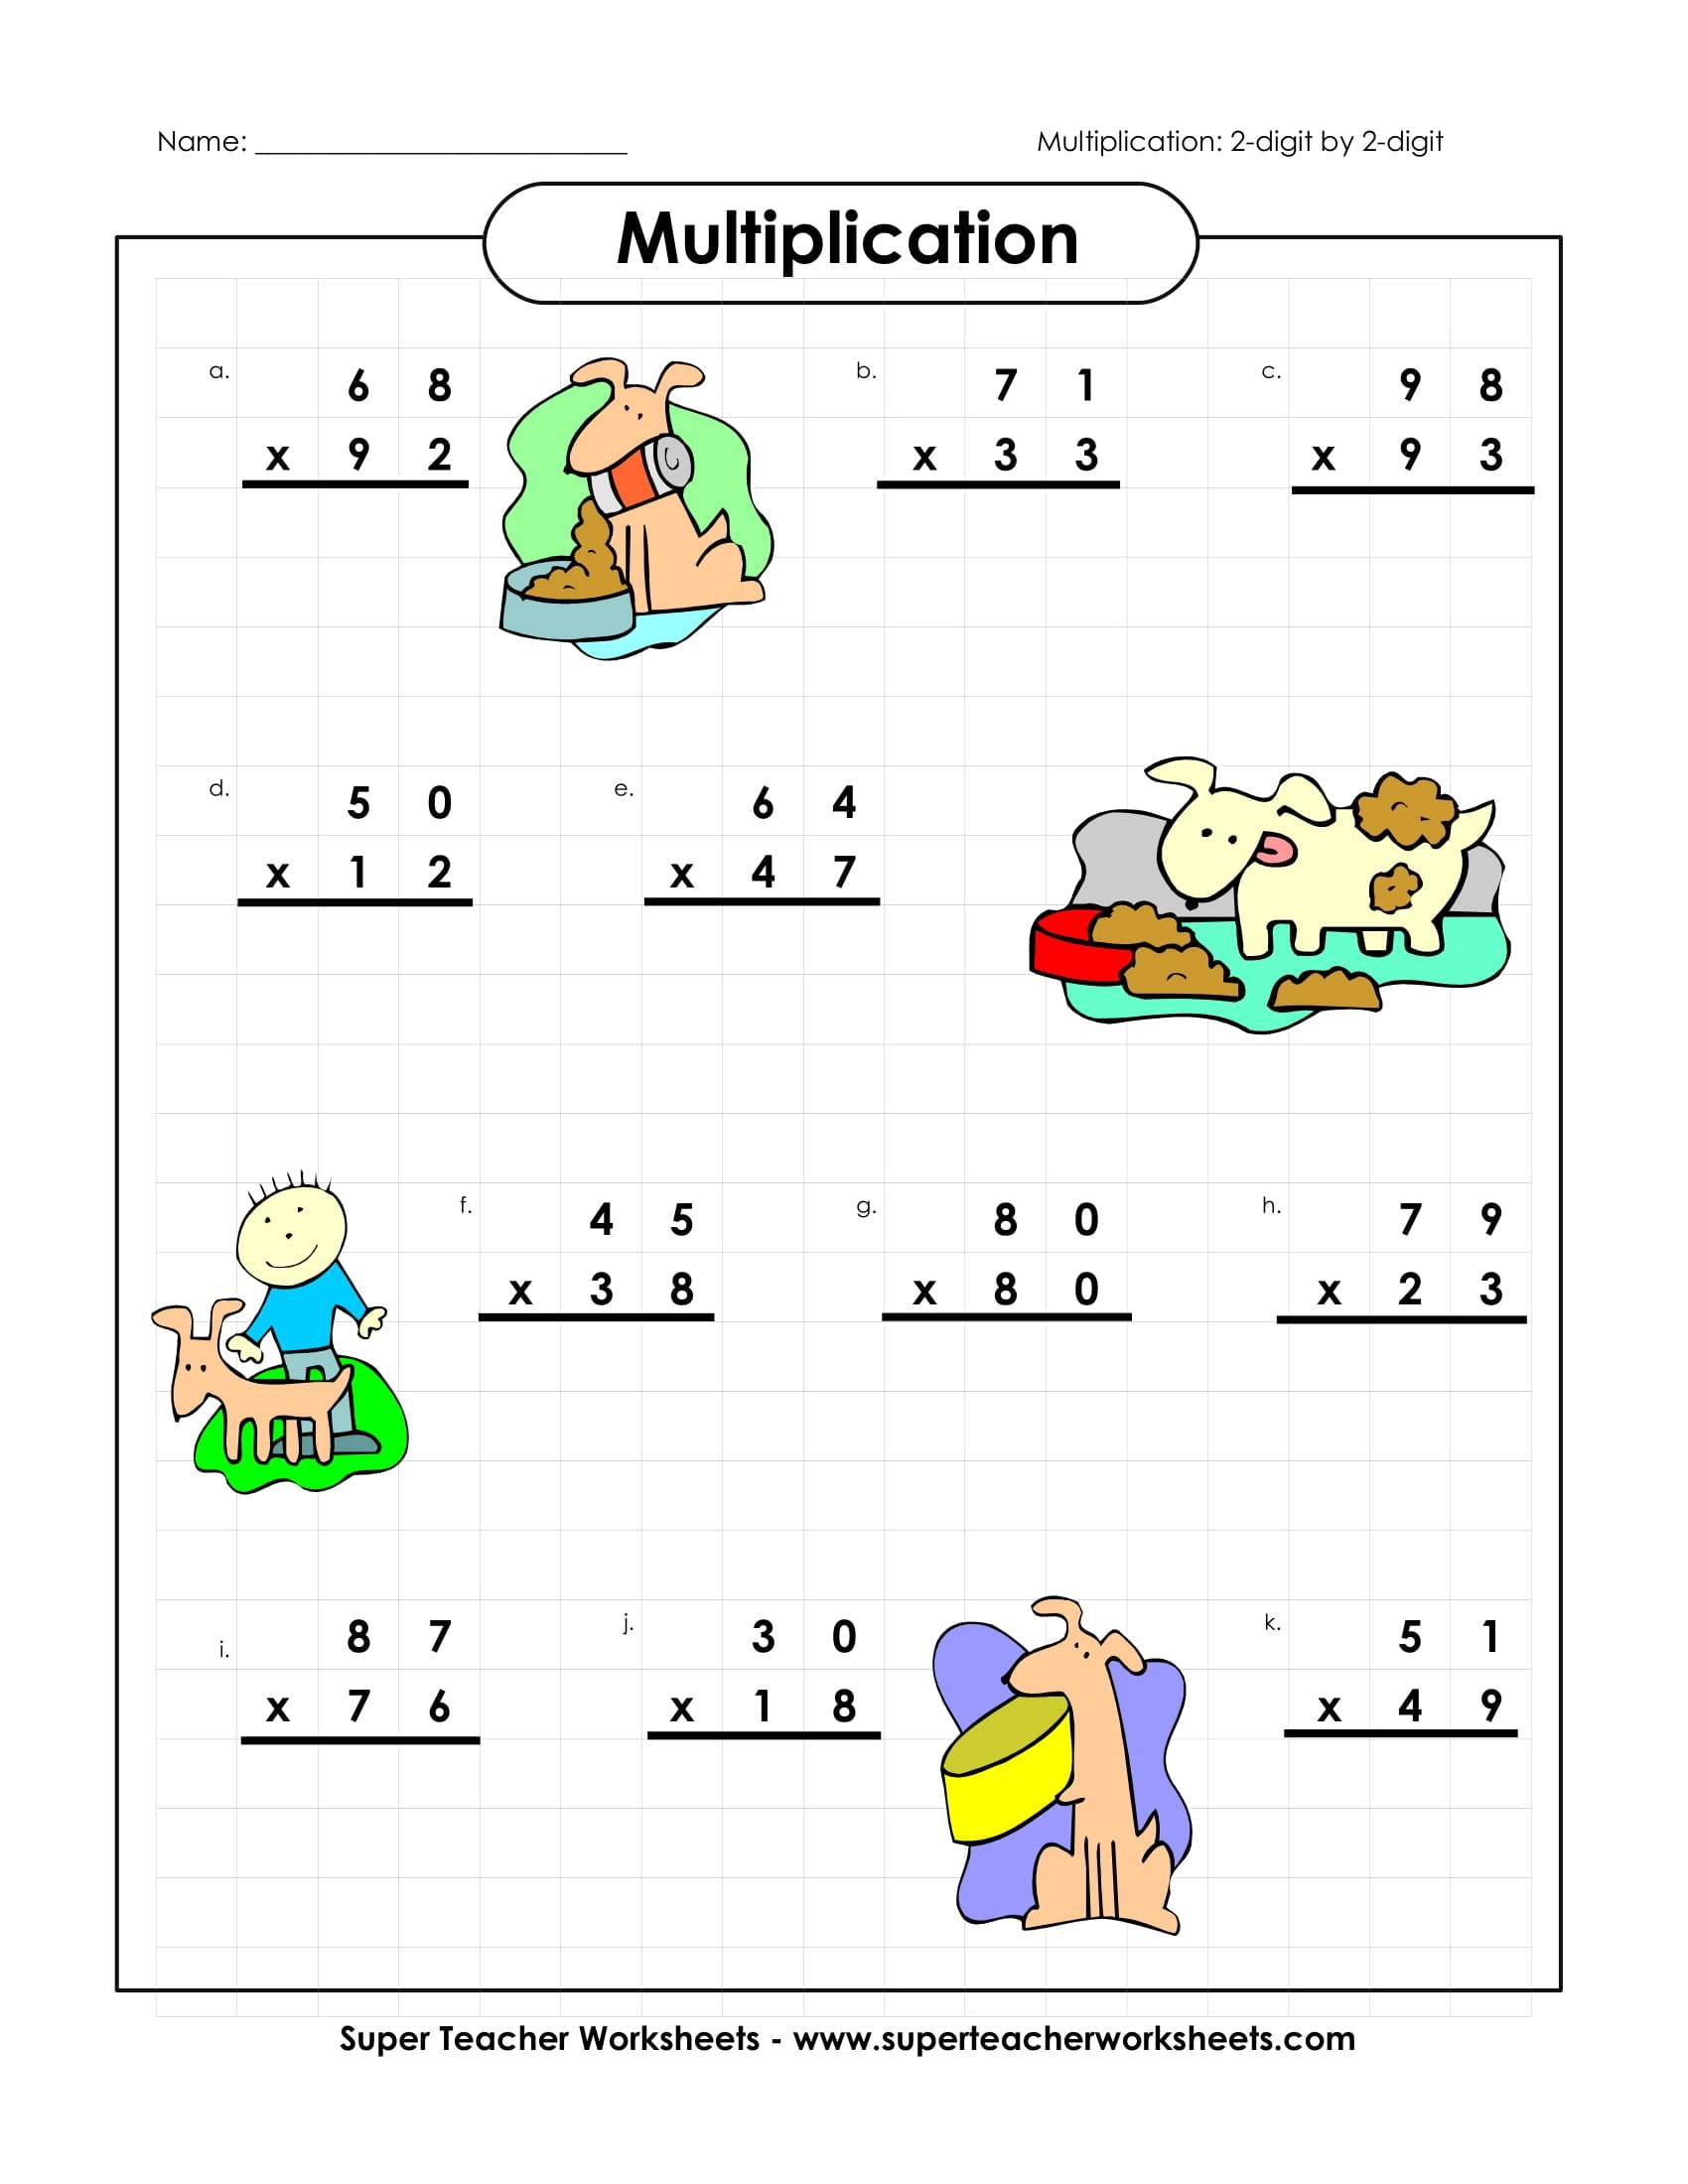 9 Math Worksheets For Students